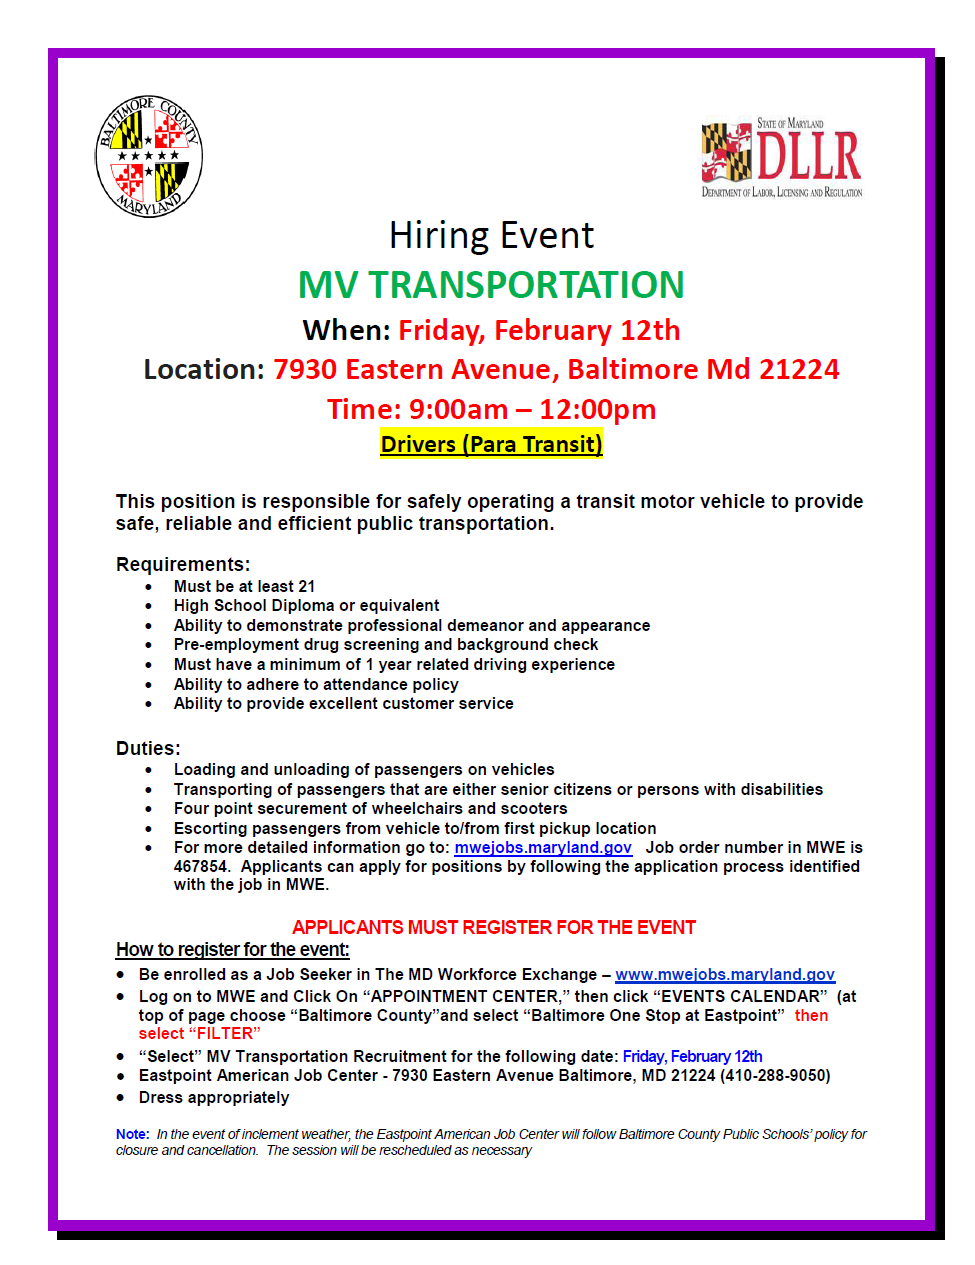 Hiring Event Mv Transportation When Friday February 12th